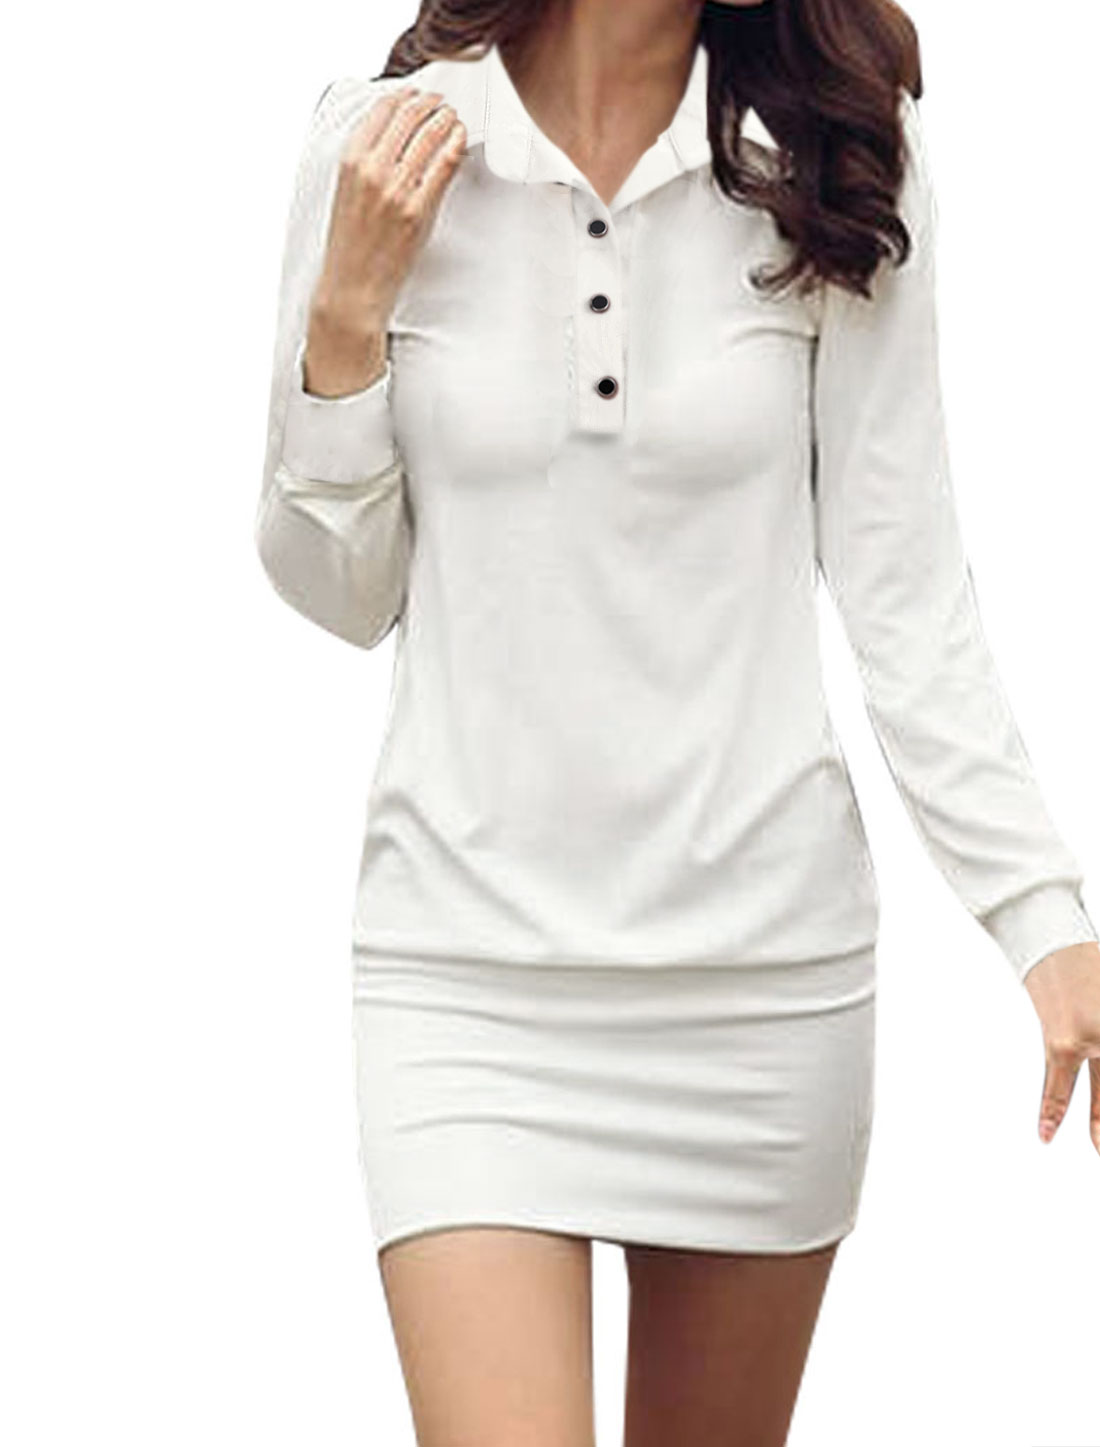 Lady White Point Collar Long Sleeve Stretchy Pullover Design Form-fitting Mini Dress M